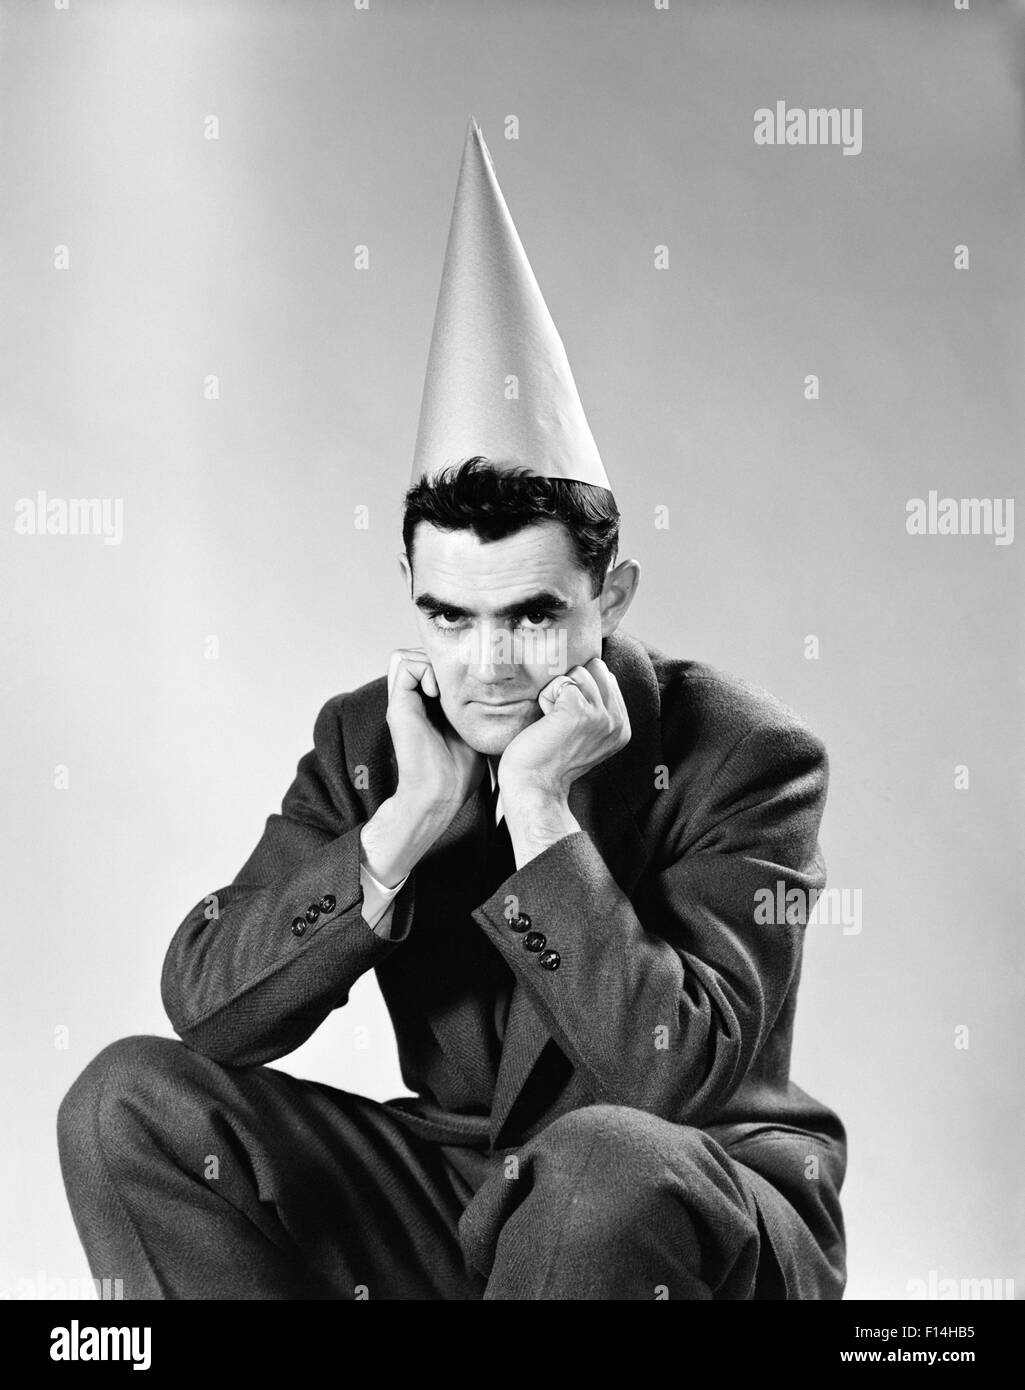 Image result for images of dunce